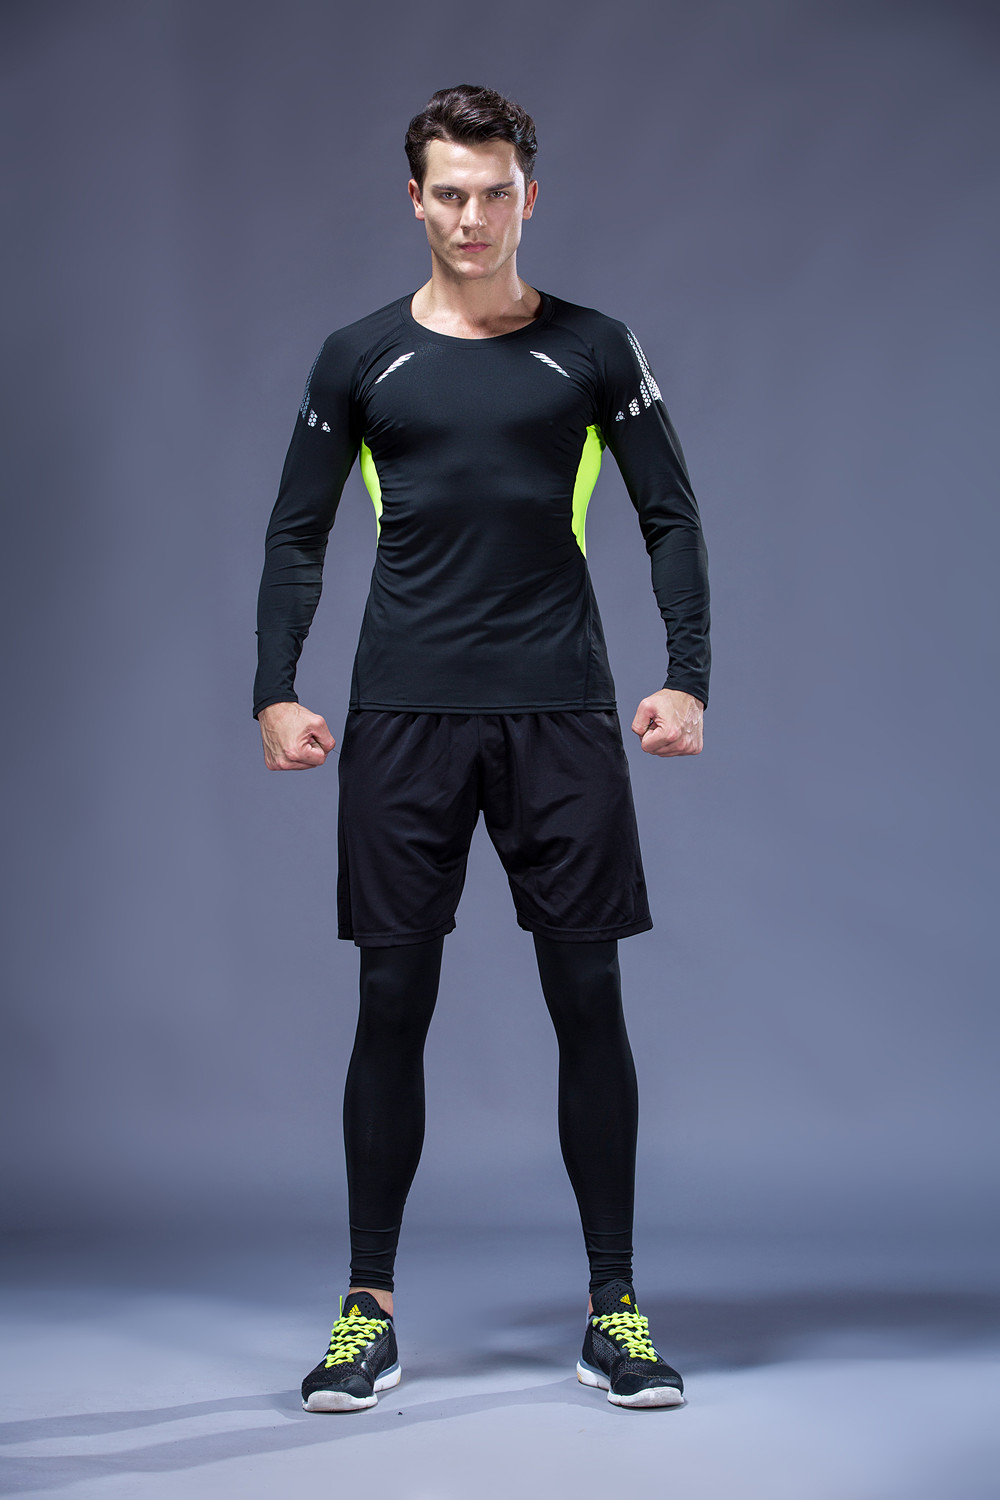 Foto on men 5 pcs compressions clothes for gym. Men's 5 pcs compression tracksuit sports